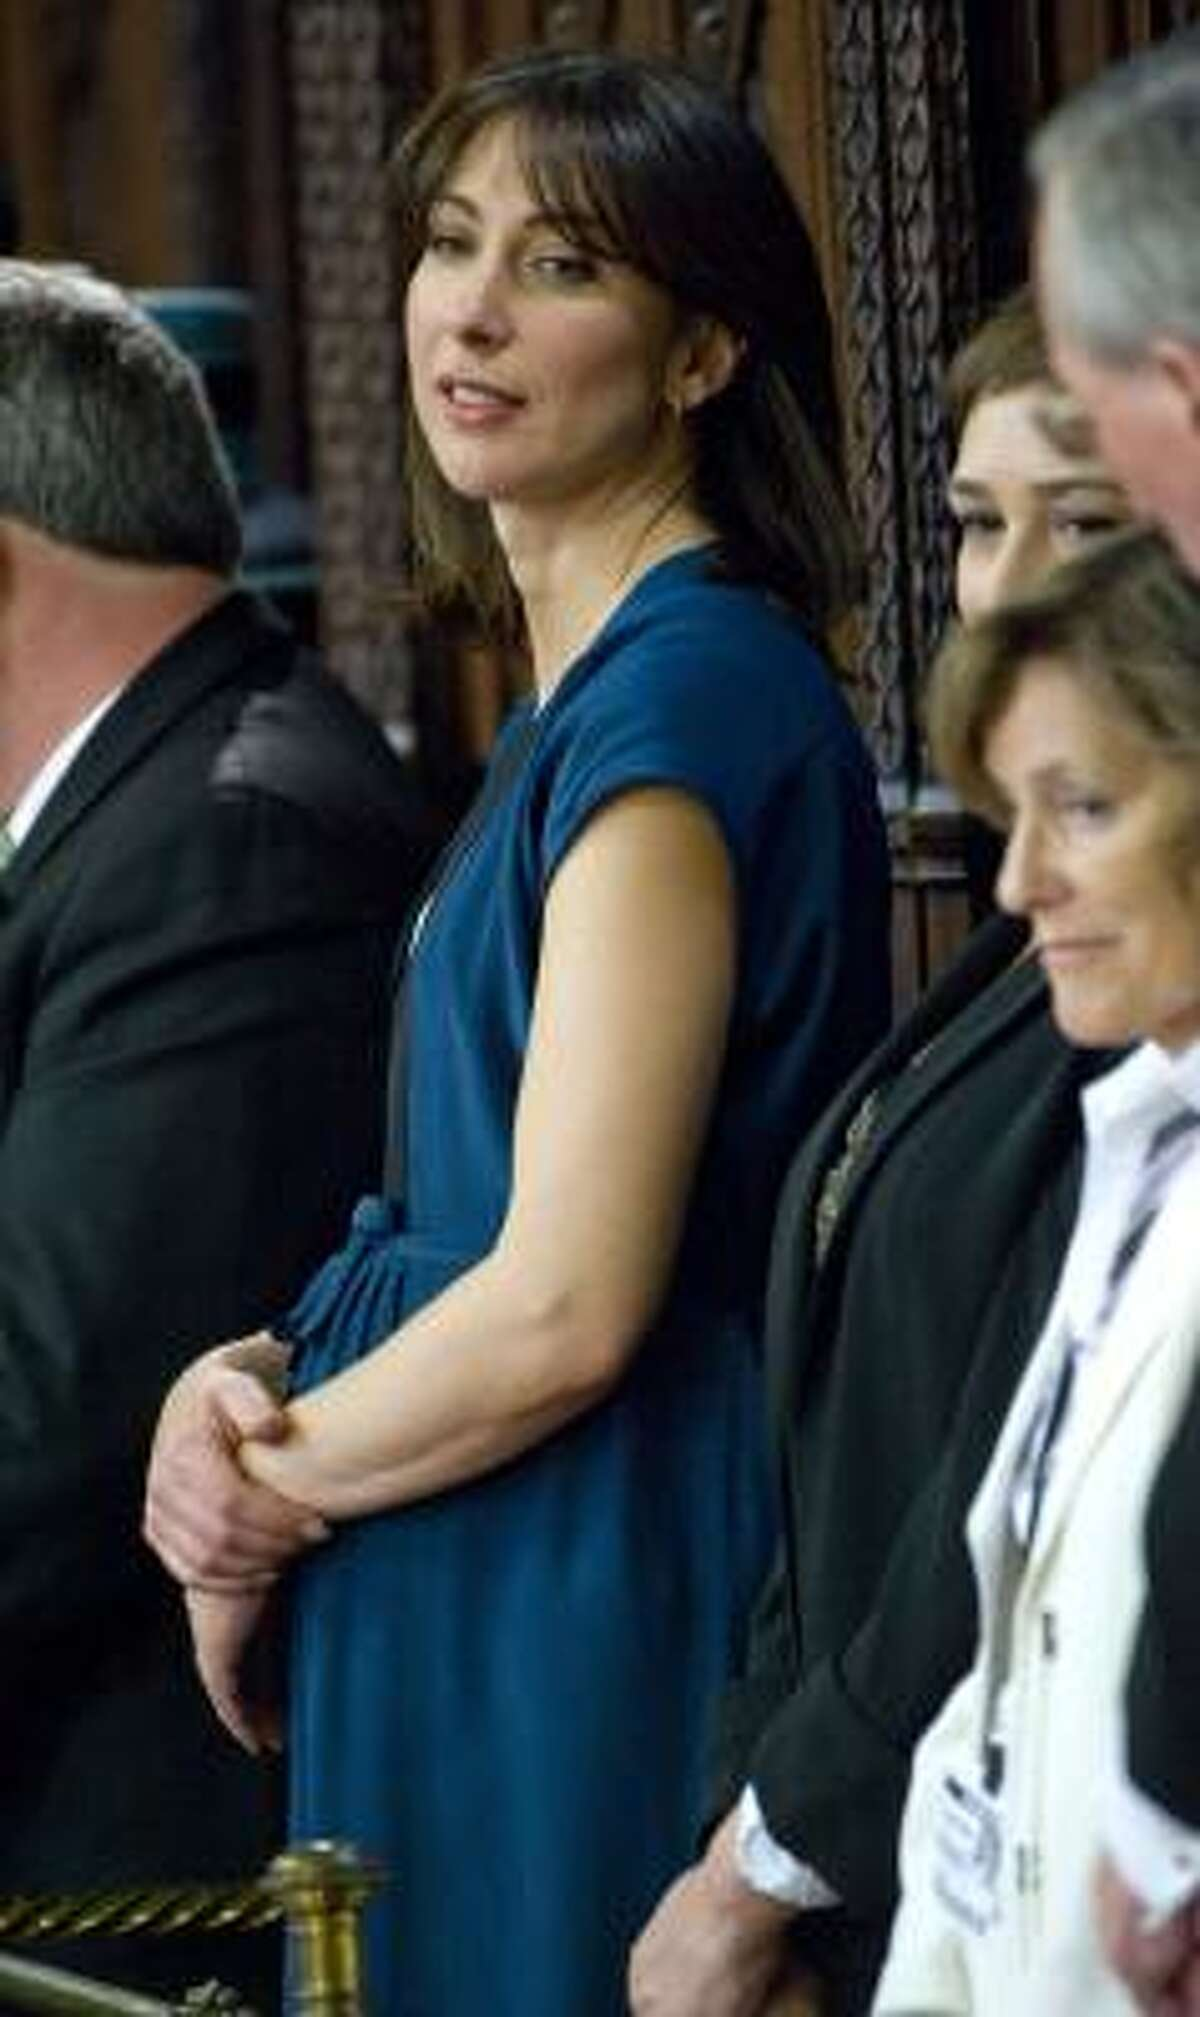 Samantha Cameron, center, wife of Britain's Prime Minister David Cameron, stands in the House of Lords during the State Opening of Parliament at the Palace of Westminster, London Tuesday May 25, 2010.